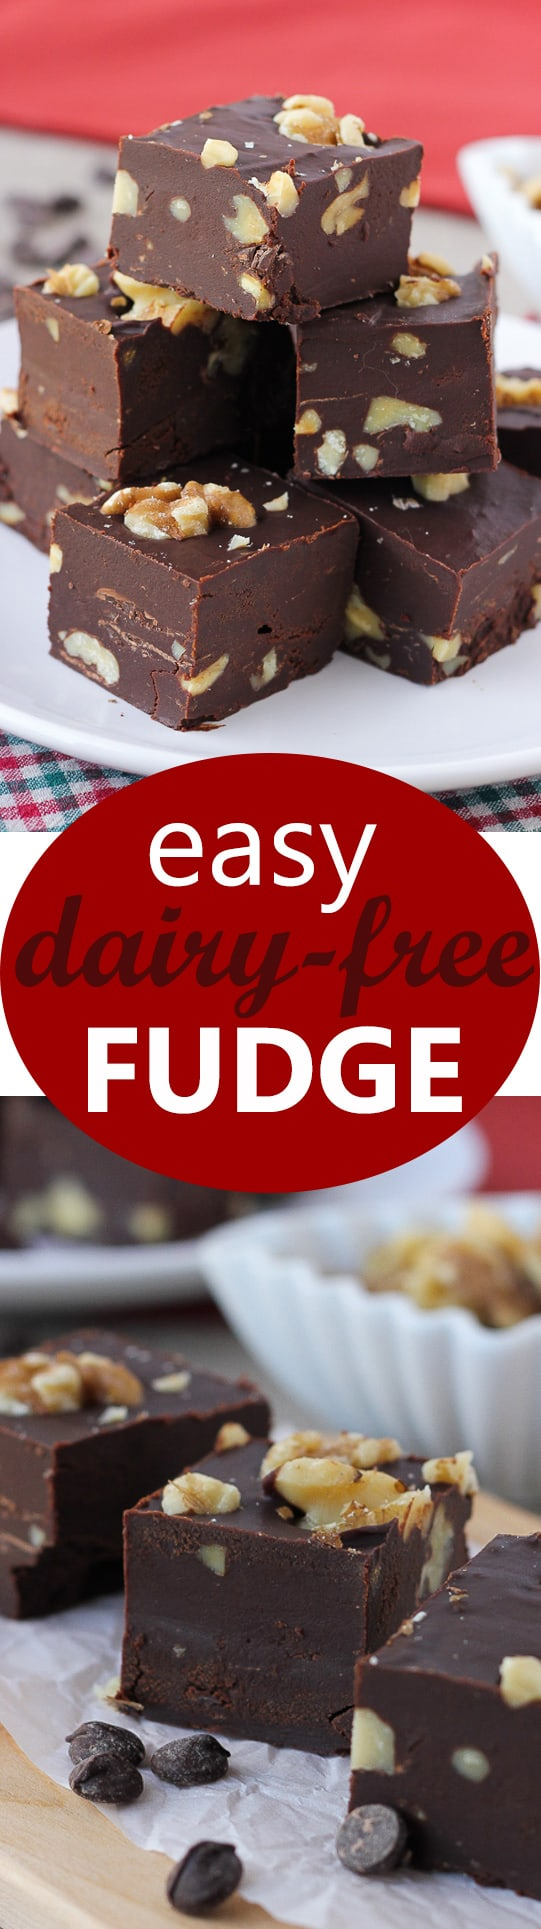 Easy, Dairy-Free Fudge! Refined-Sugar-Free and foolproof!